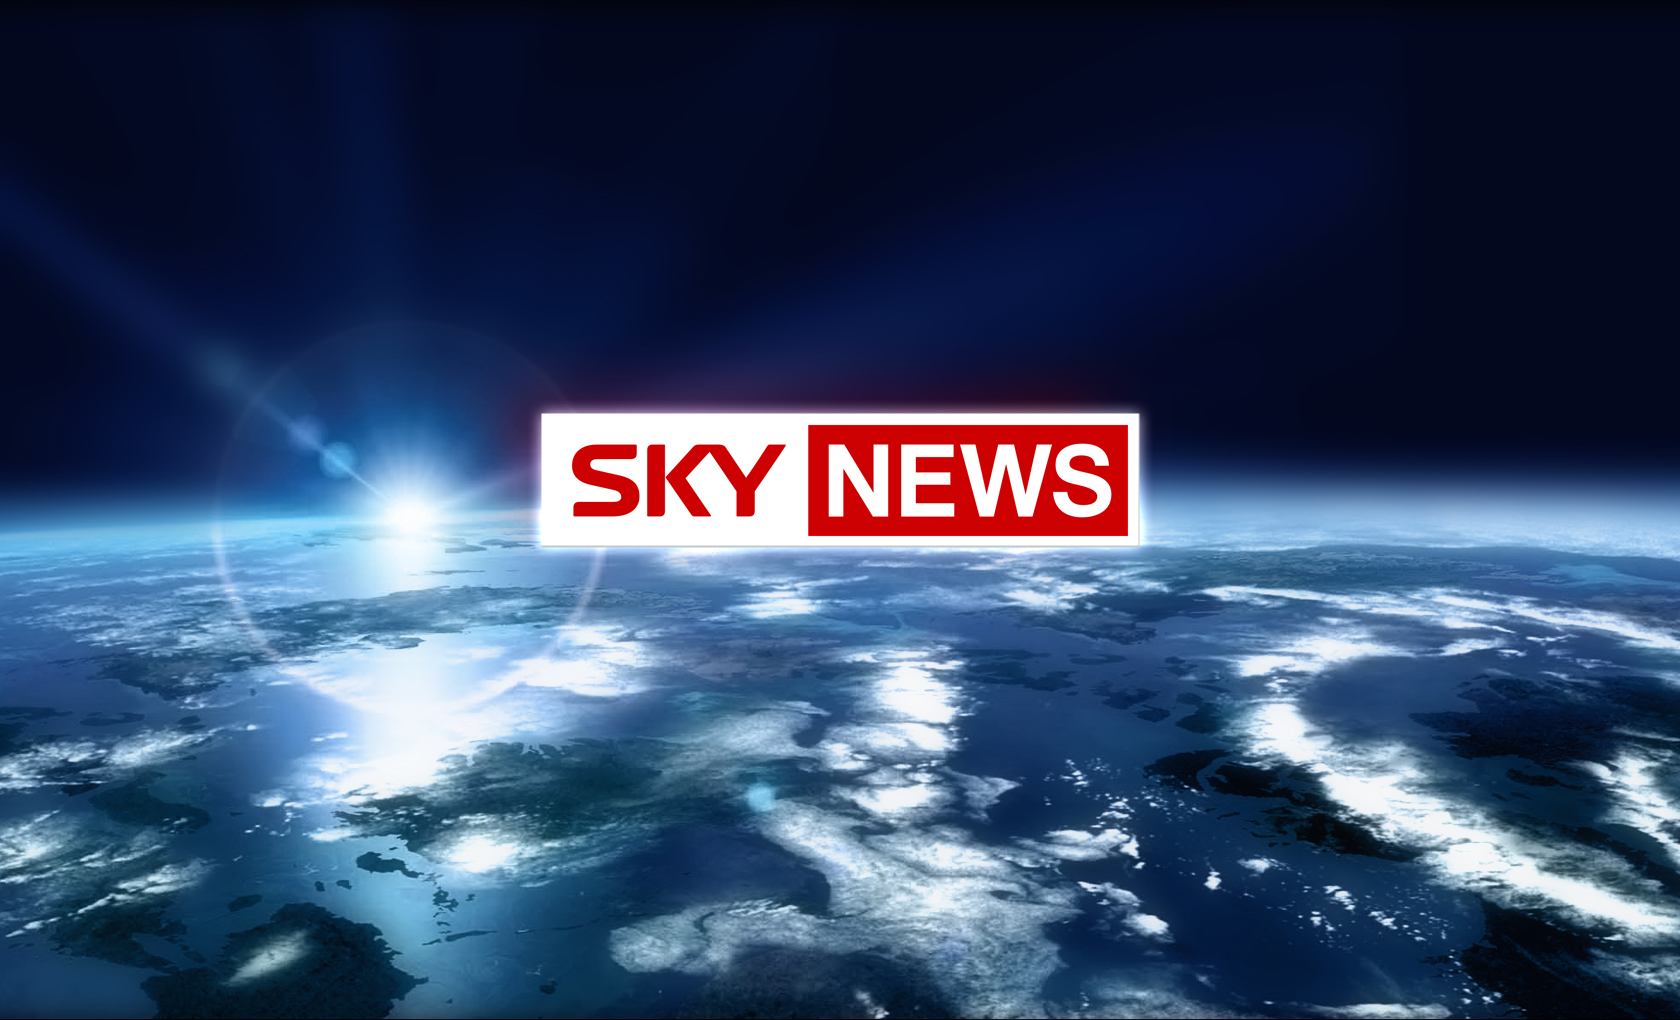 The Right Call? Activists Forcing Sky News to Drop FGM Footage